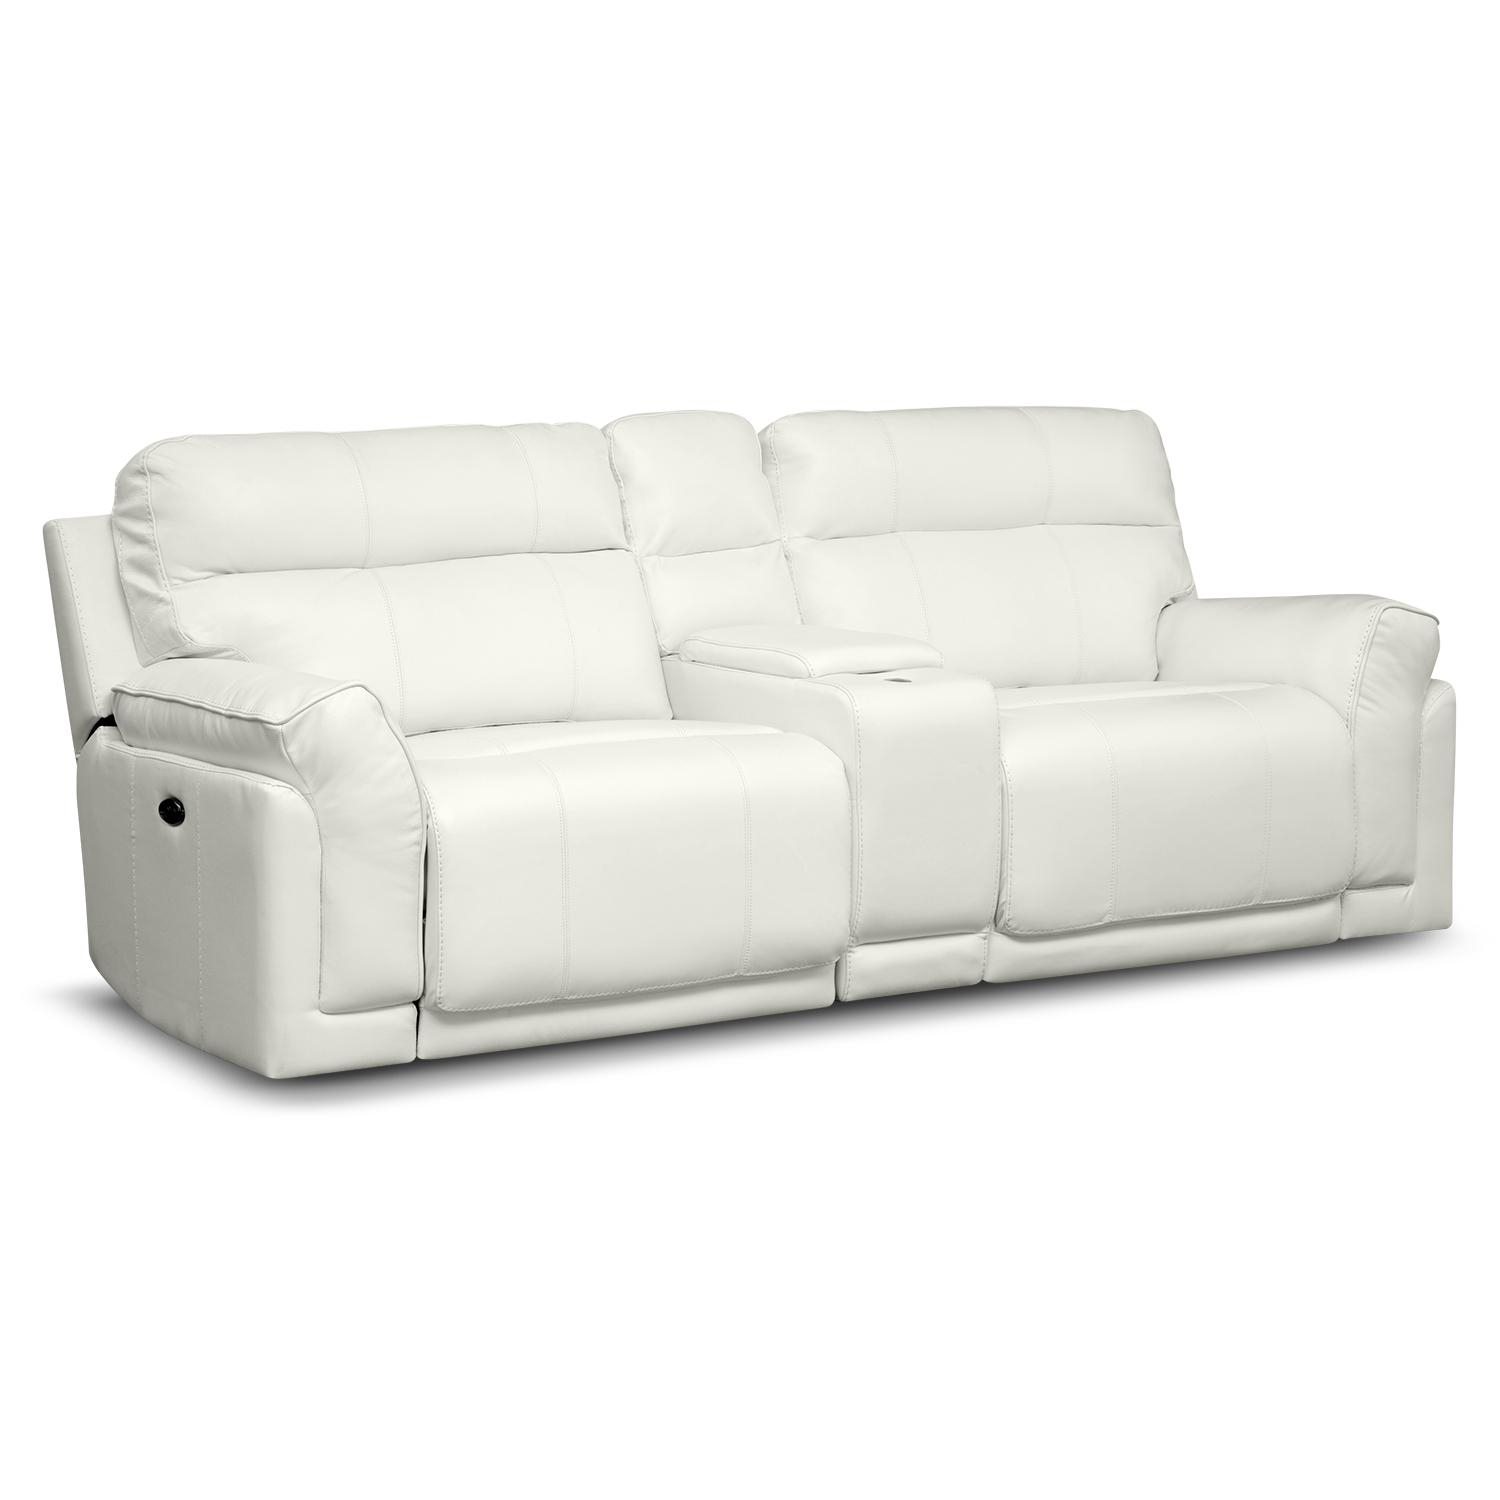 Sofas Center : Magnificent Reclining Sofath Console Images Concept For Sofas With Consoles (Image 7 of 20)